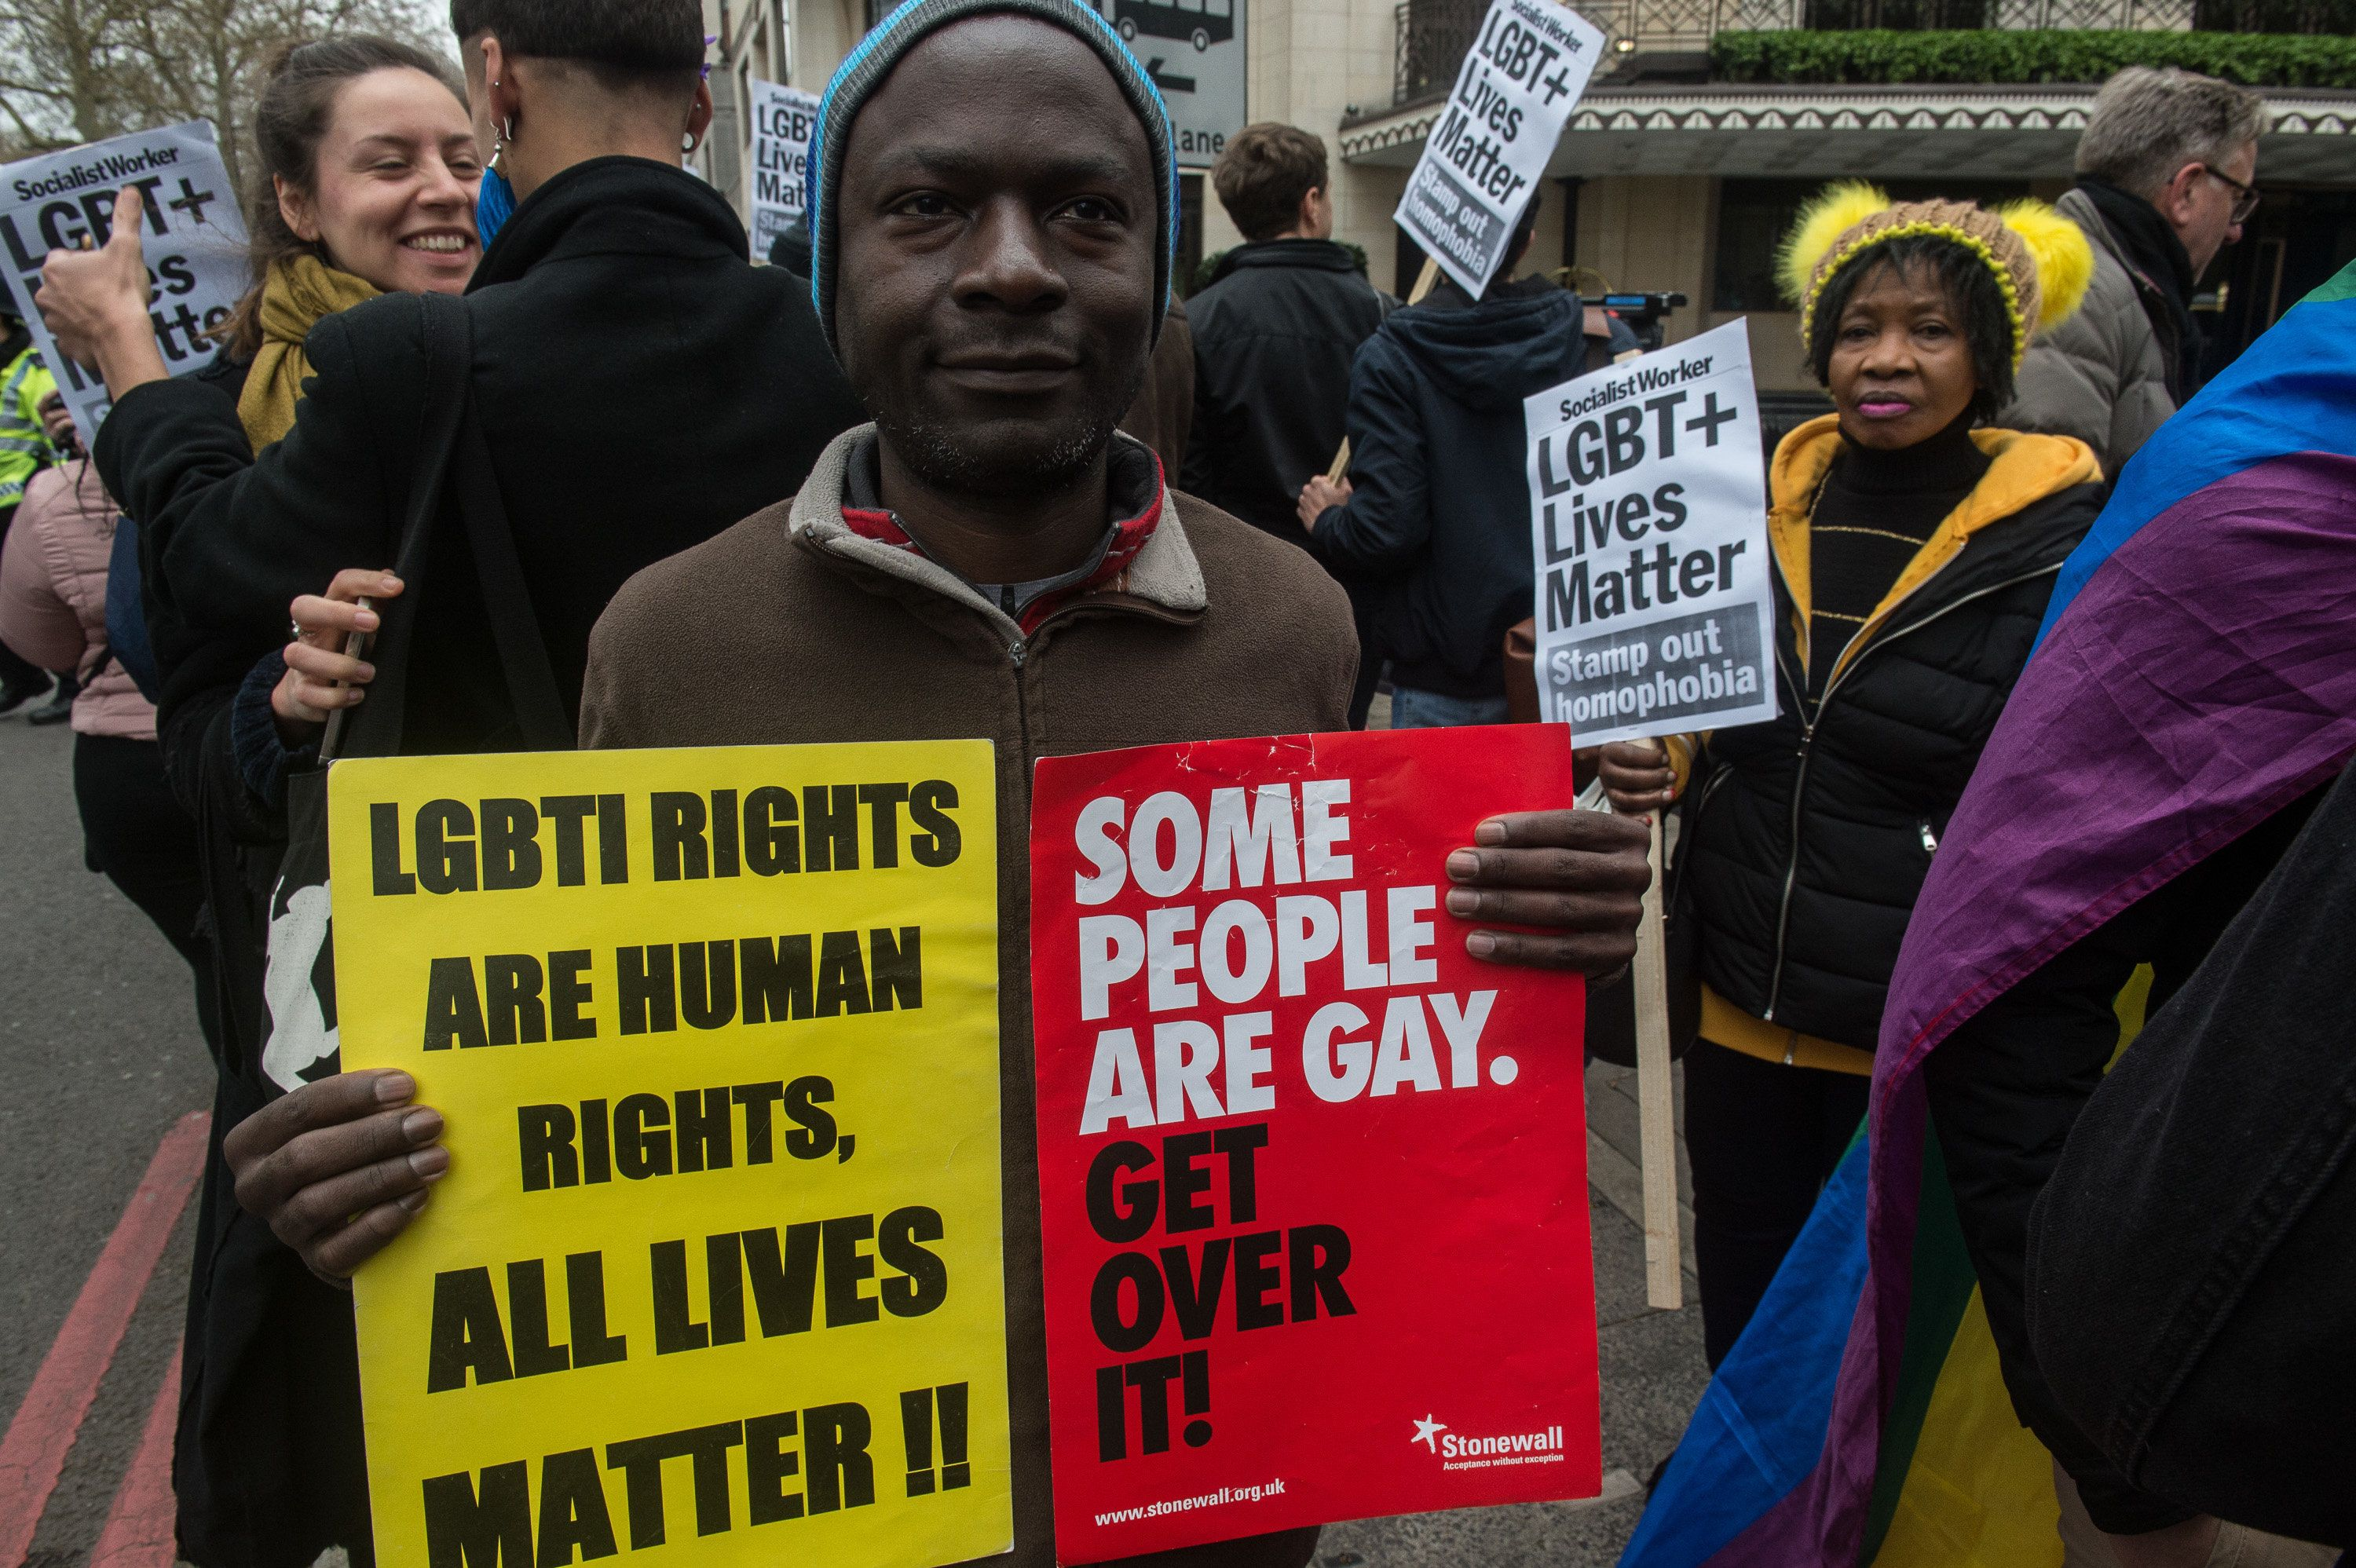 LONDON, ENGLAND - APRIL 6: LGBT activists protest against the Sultan of Brunei, who has ratified a law to make homosexuality punishable by stoning, at the Dorchester Hotel on April 6, 2019 in London, England. (Photo by Guy Smallman/Getty Images)